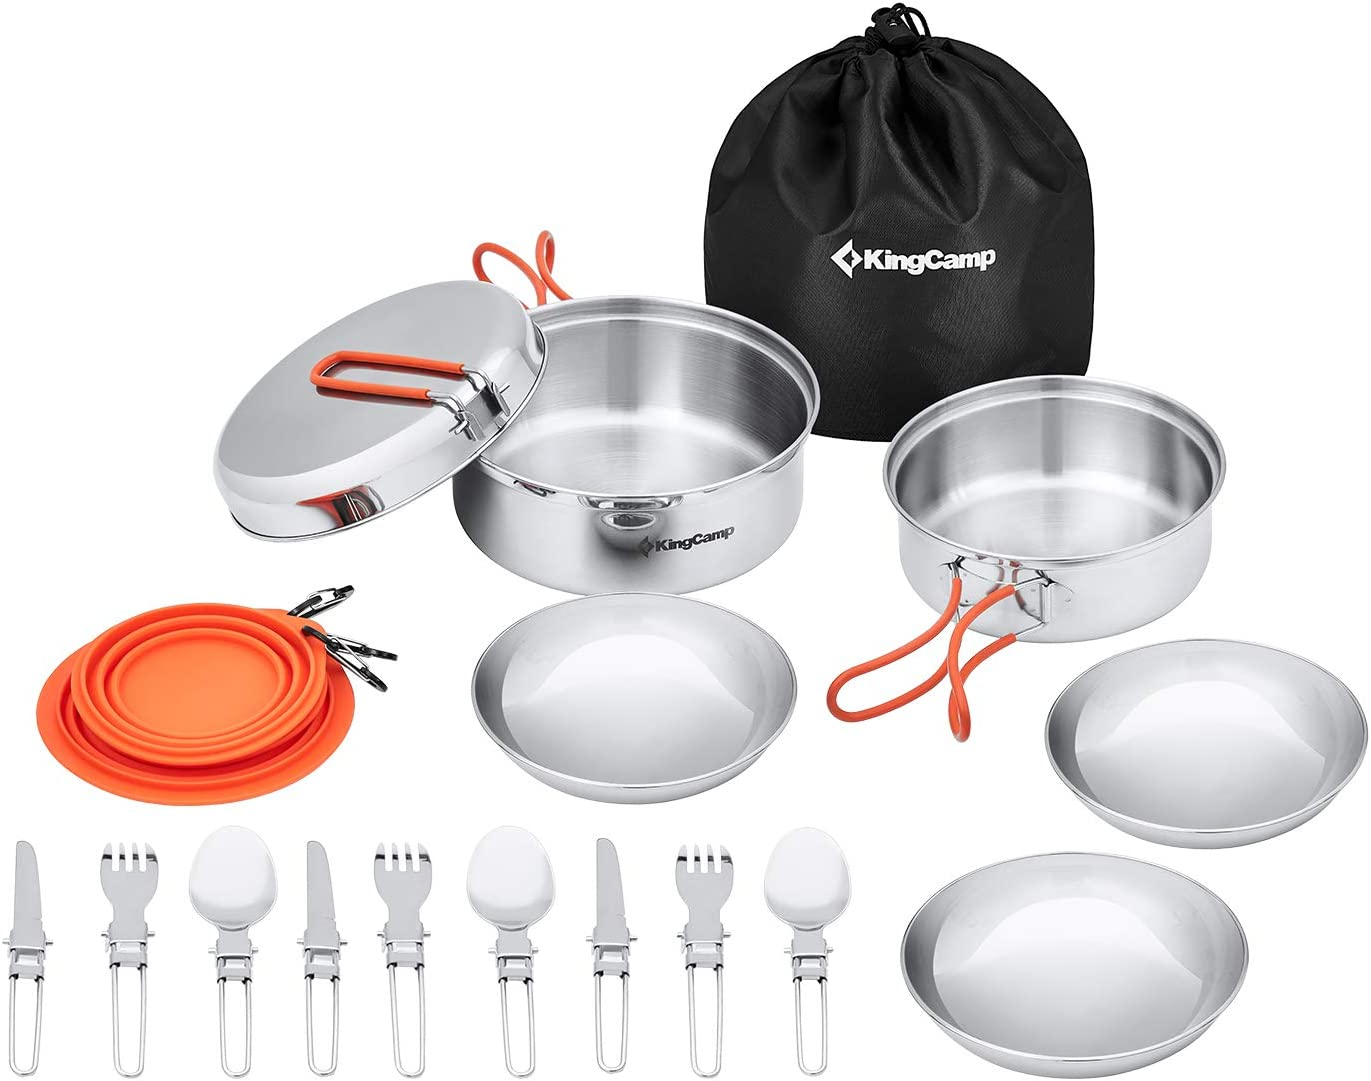 Gear /& Hiking Outdoor Cook Gear Cook Set for Hiking Durable Compact Pot Pan Bowls Lightweight Backpacking Cooking Set KingCamp Camping Cookware Mess Kit Picnic BPA-Free